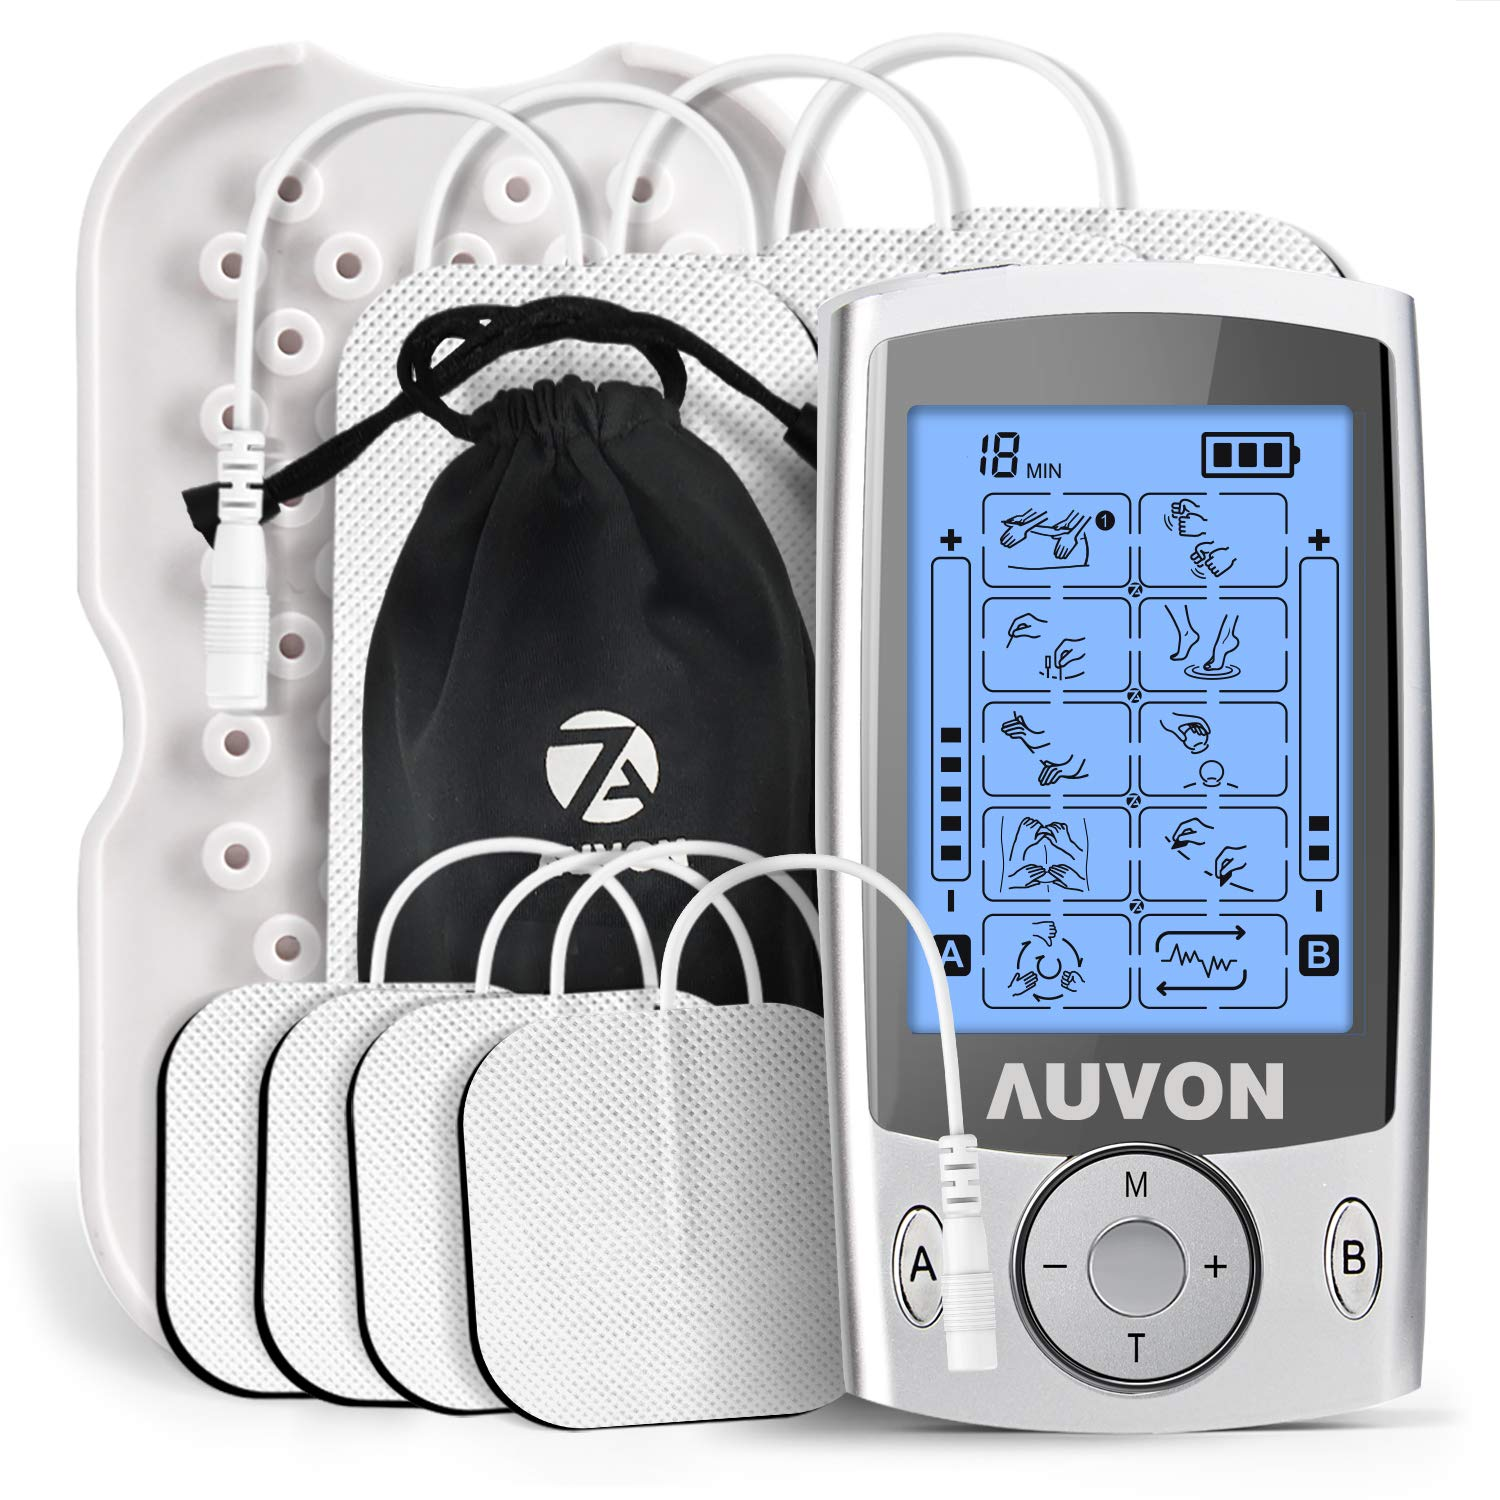 AUVON Dual Channel TENS Unit Muscle Stimulator Machine with 20 Modes, 2'' and 2''x4'' TENS Unit Electrode Pads (FDA Cleared)